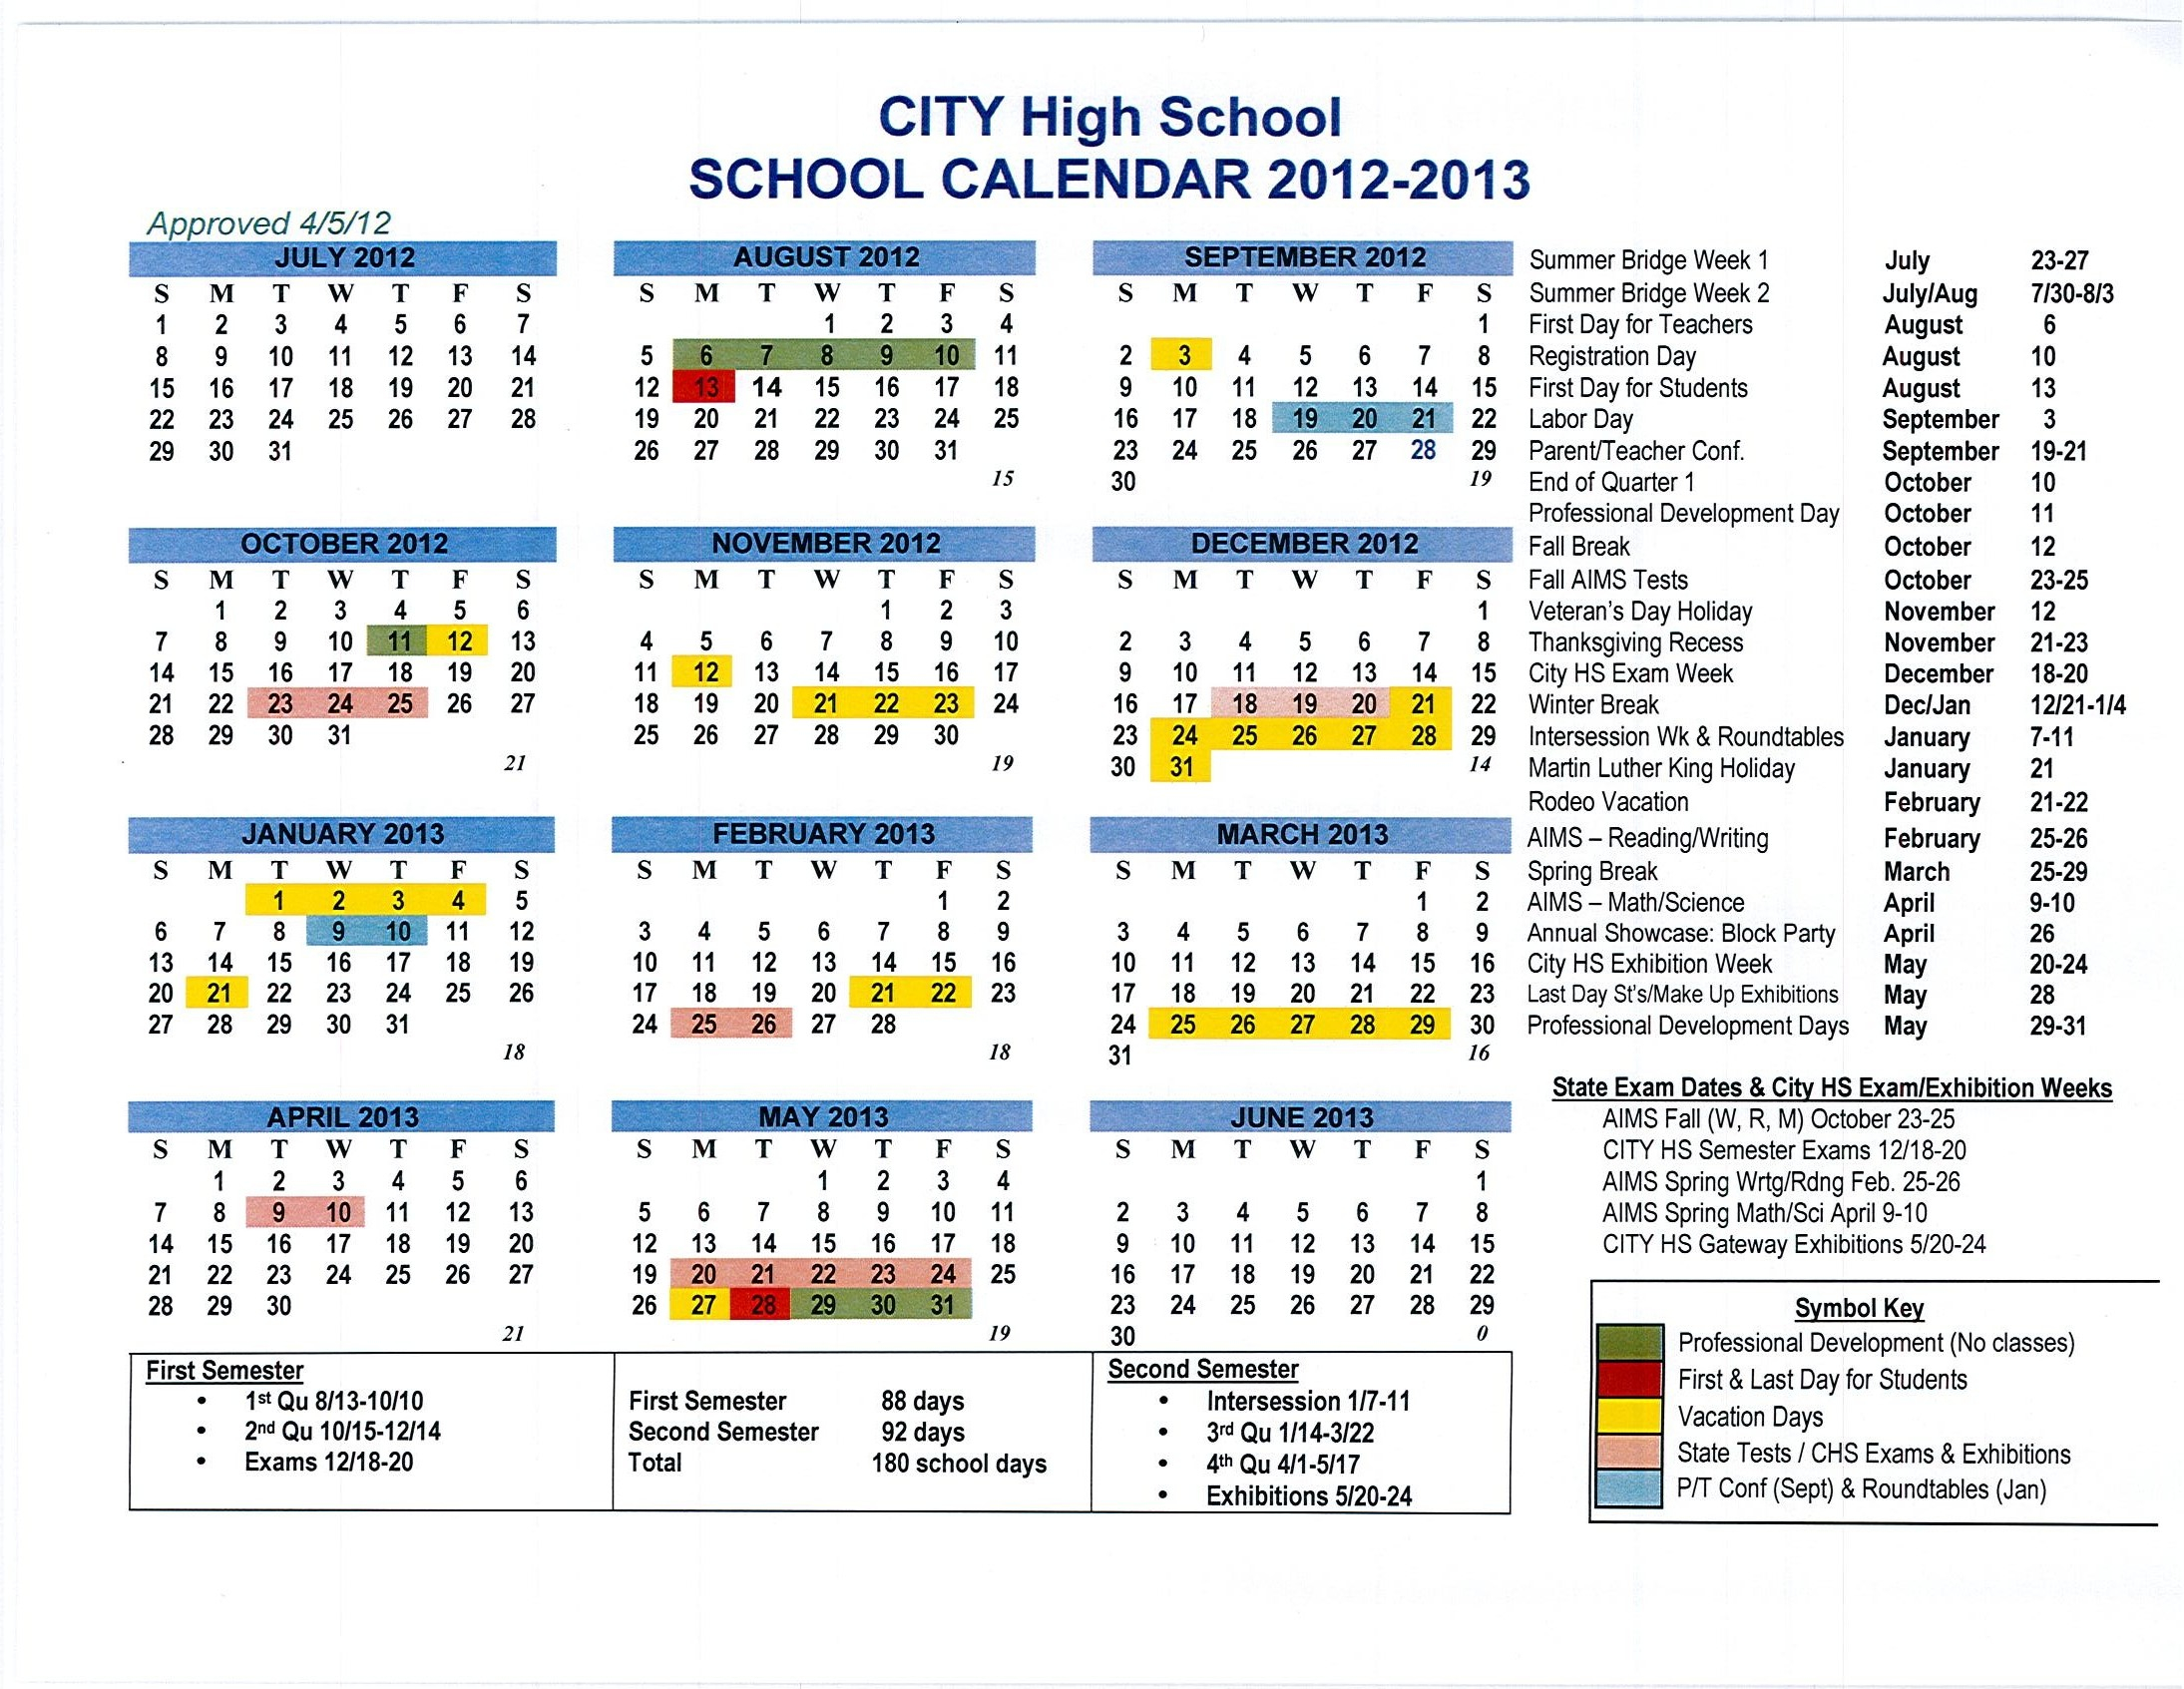 School Calendar Approved For 2012-13 | A Charter High School